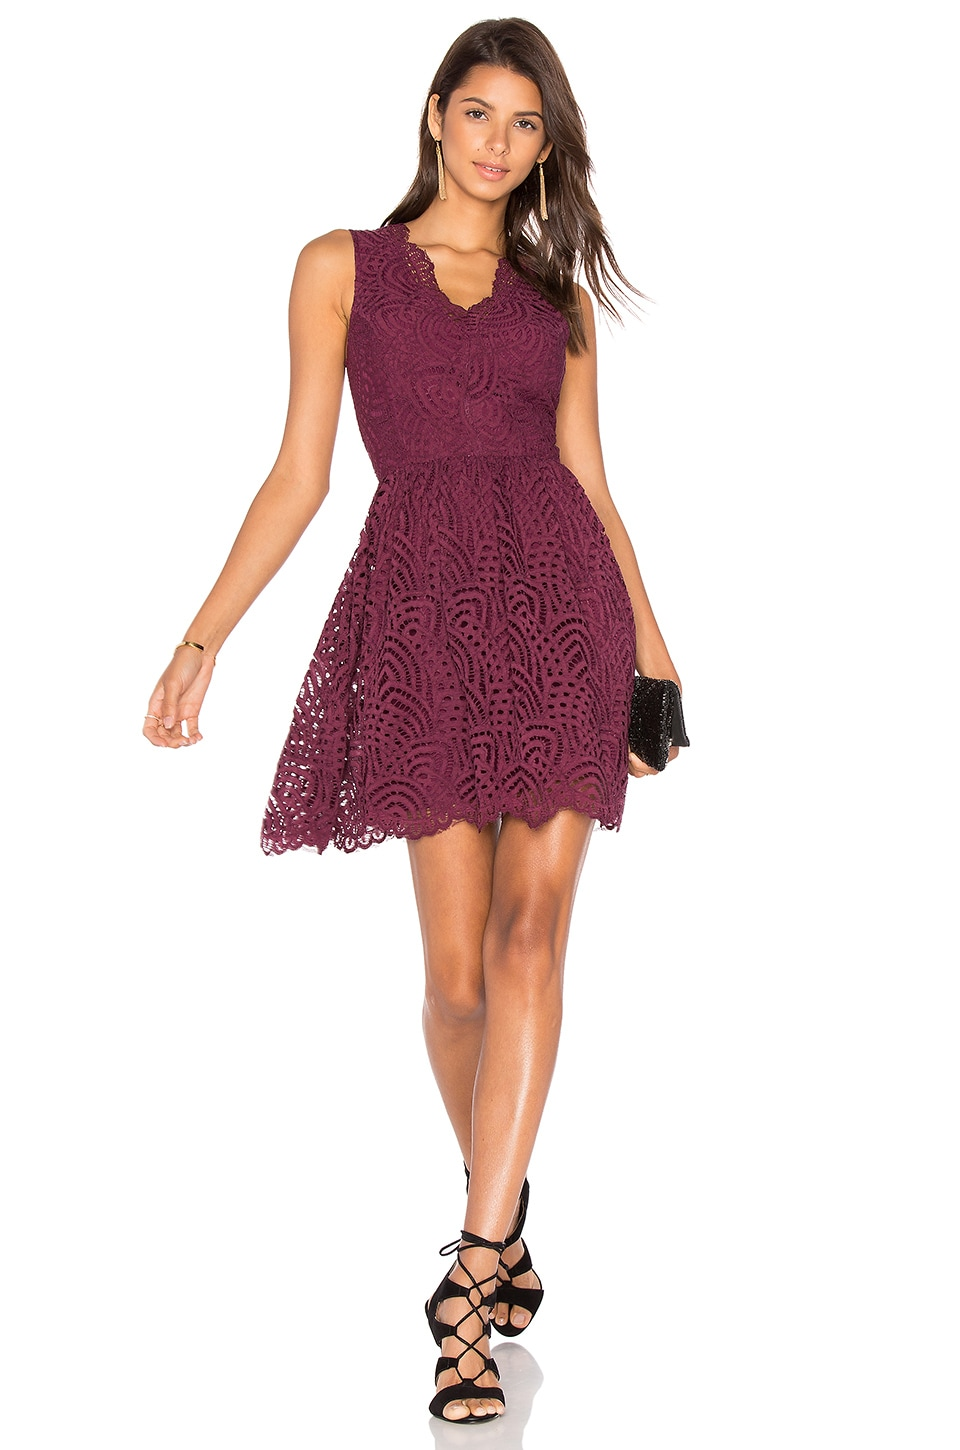 Bobi BLACK Lace Crochet Overlay Fit & Flare Sleeveless Dress in Wine